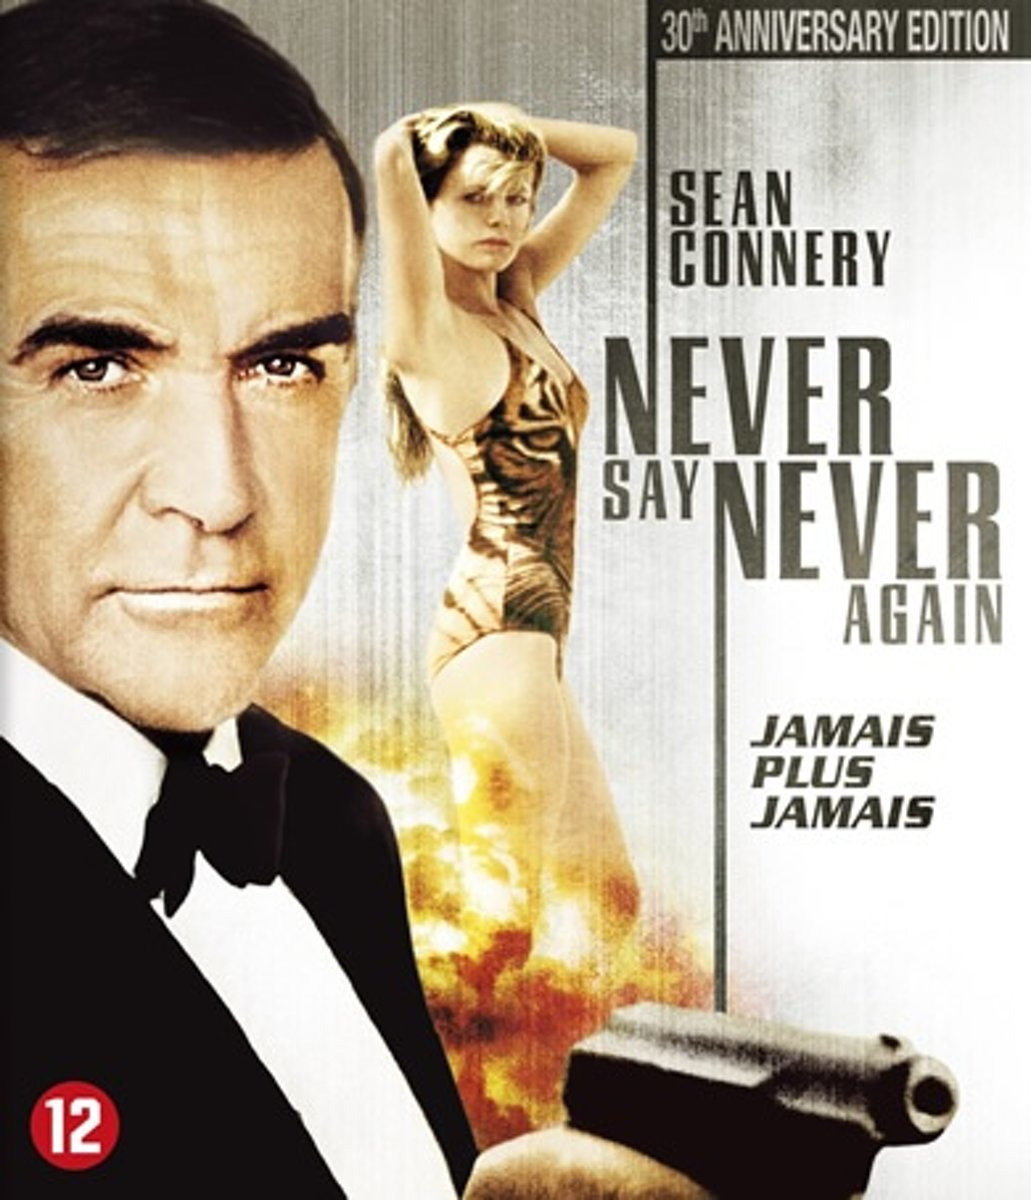 Never again the movie